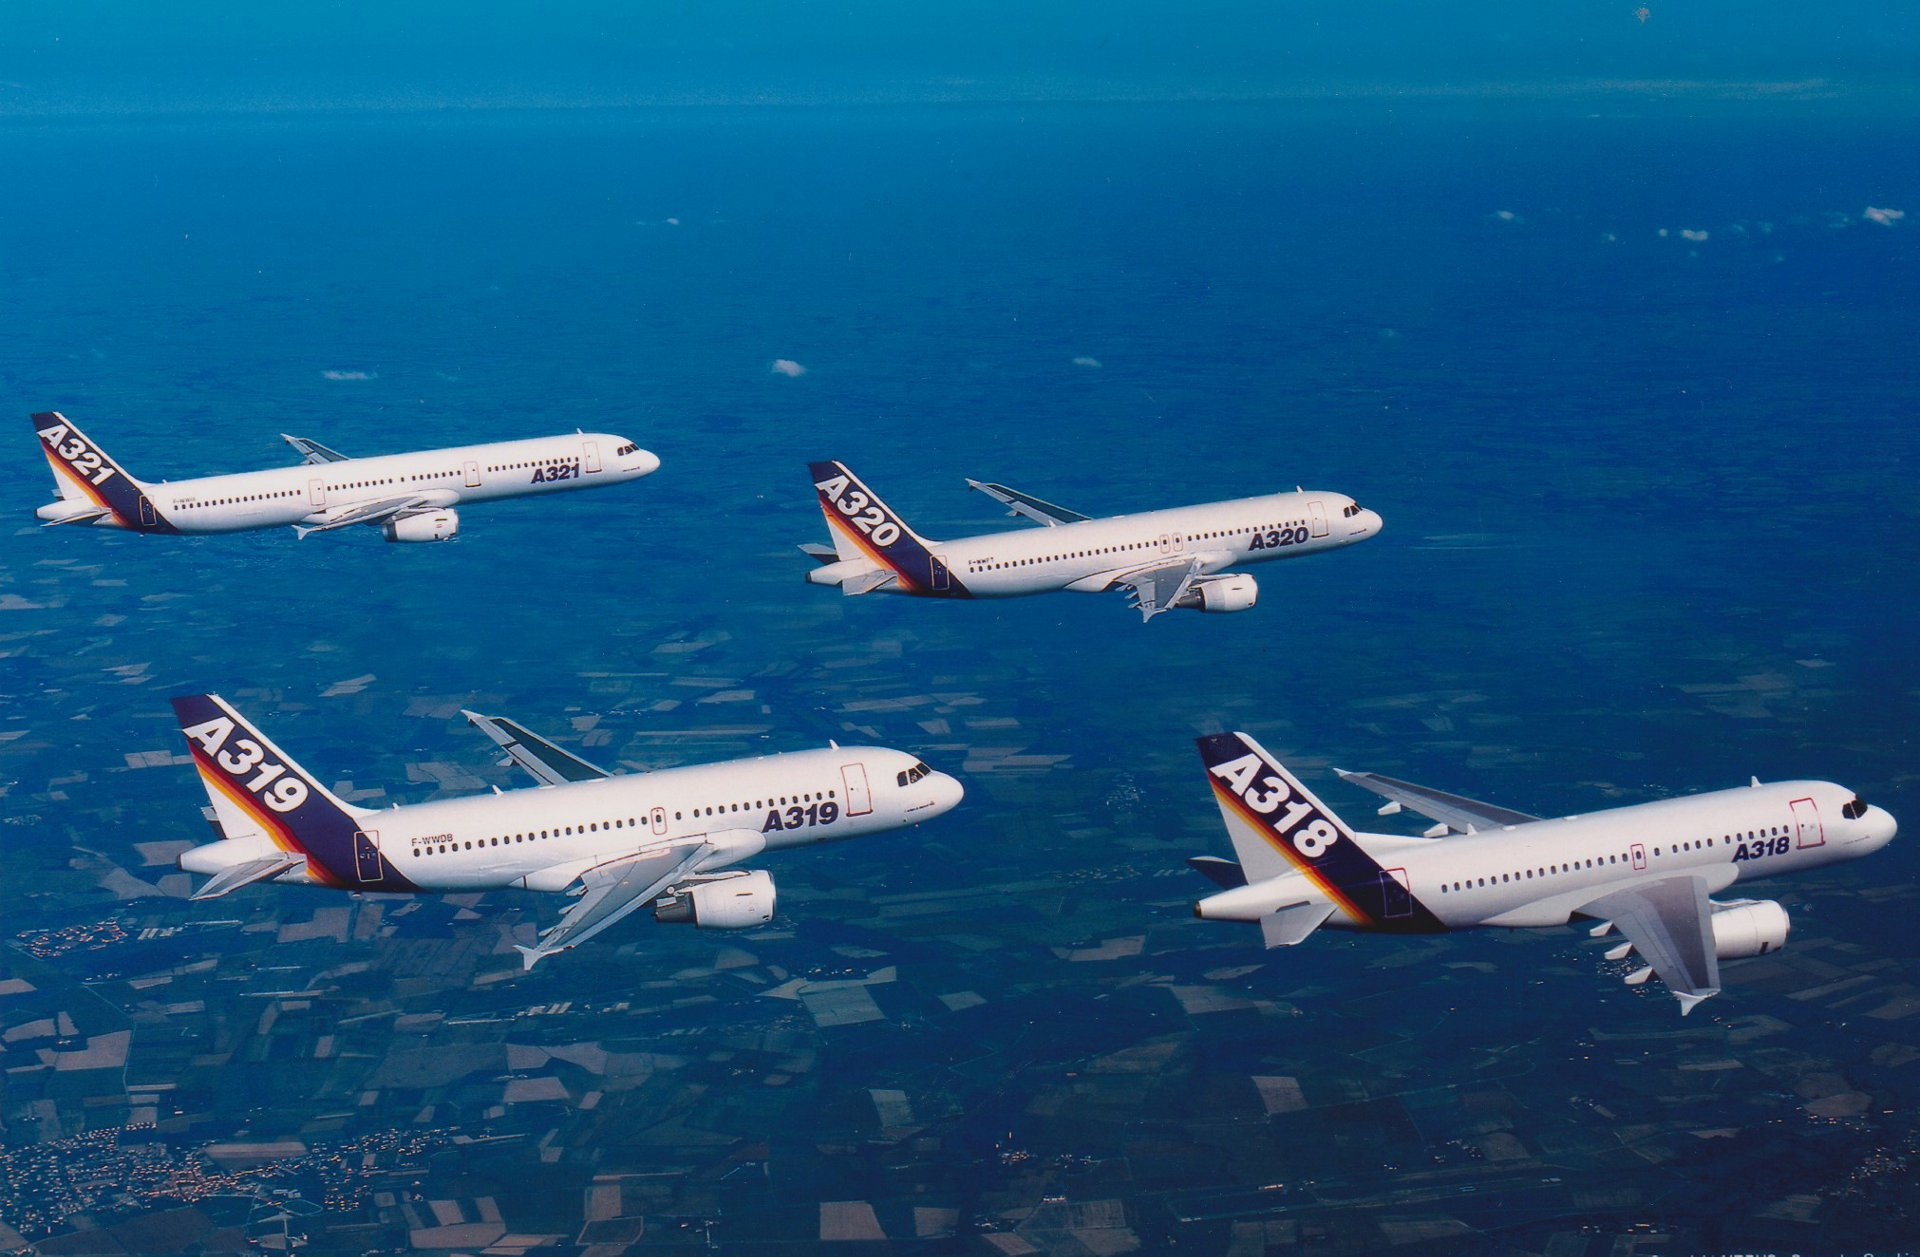 Airbus' A320 Family is the world's best-selling single-aisle product line.